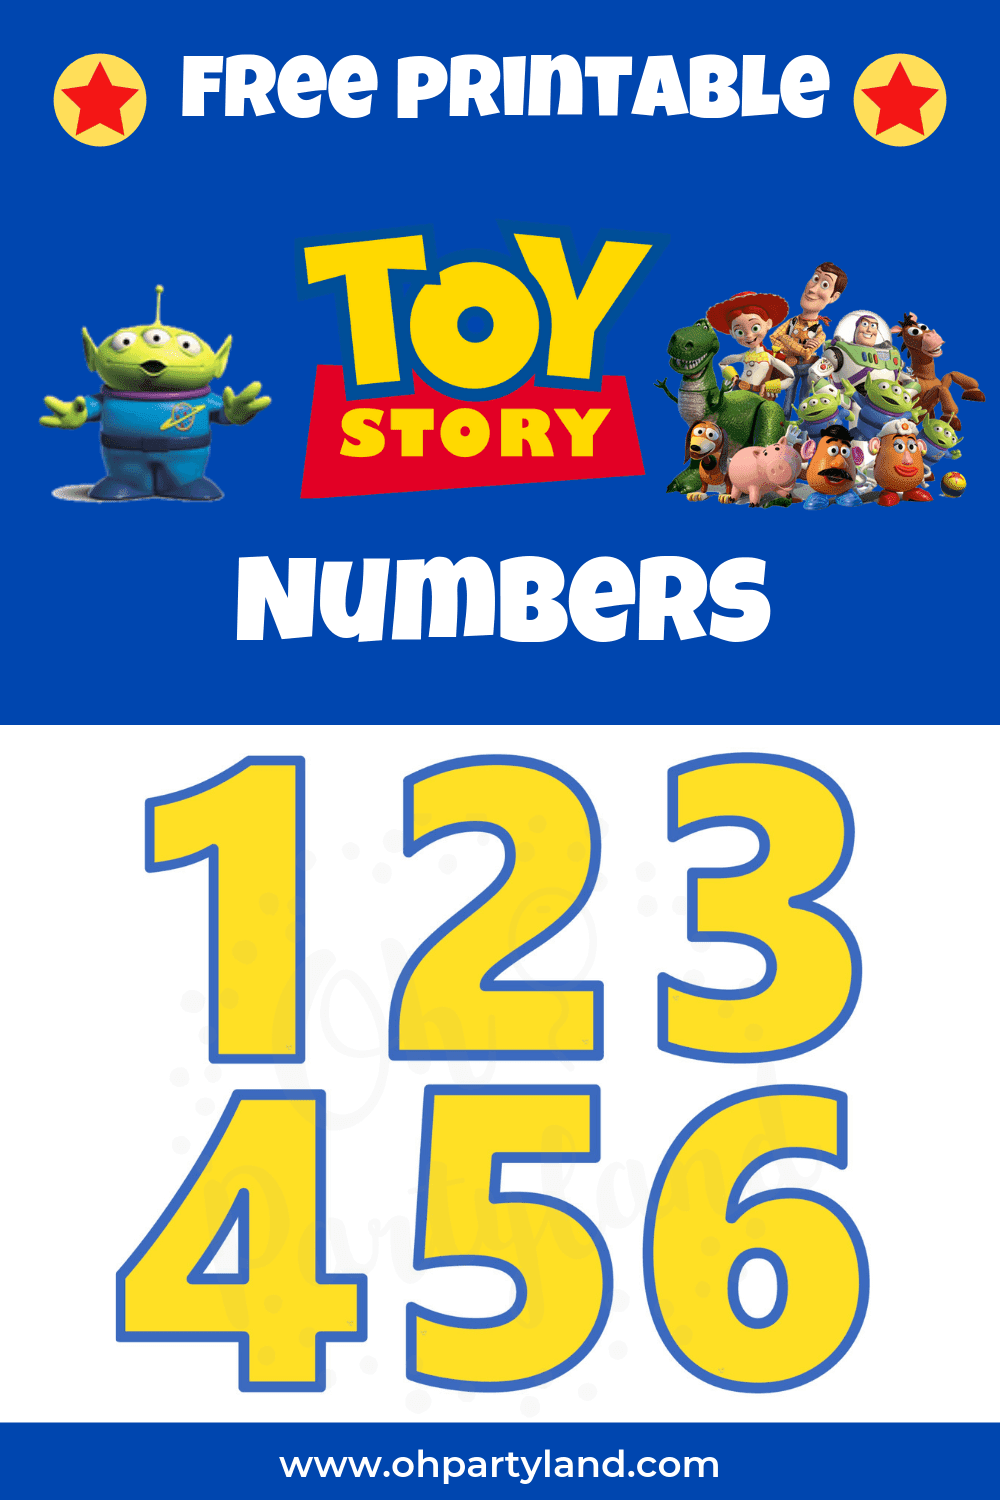 free-printable-toy-story-numbers